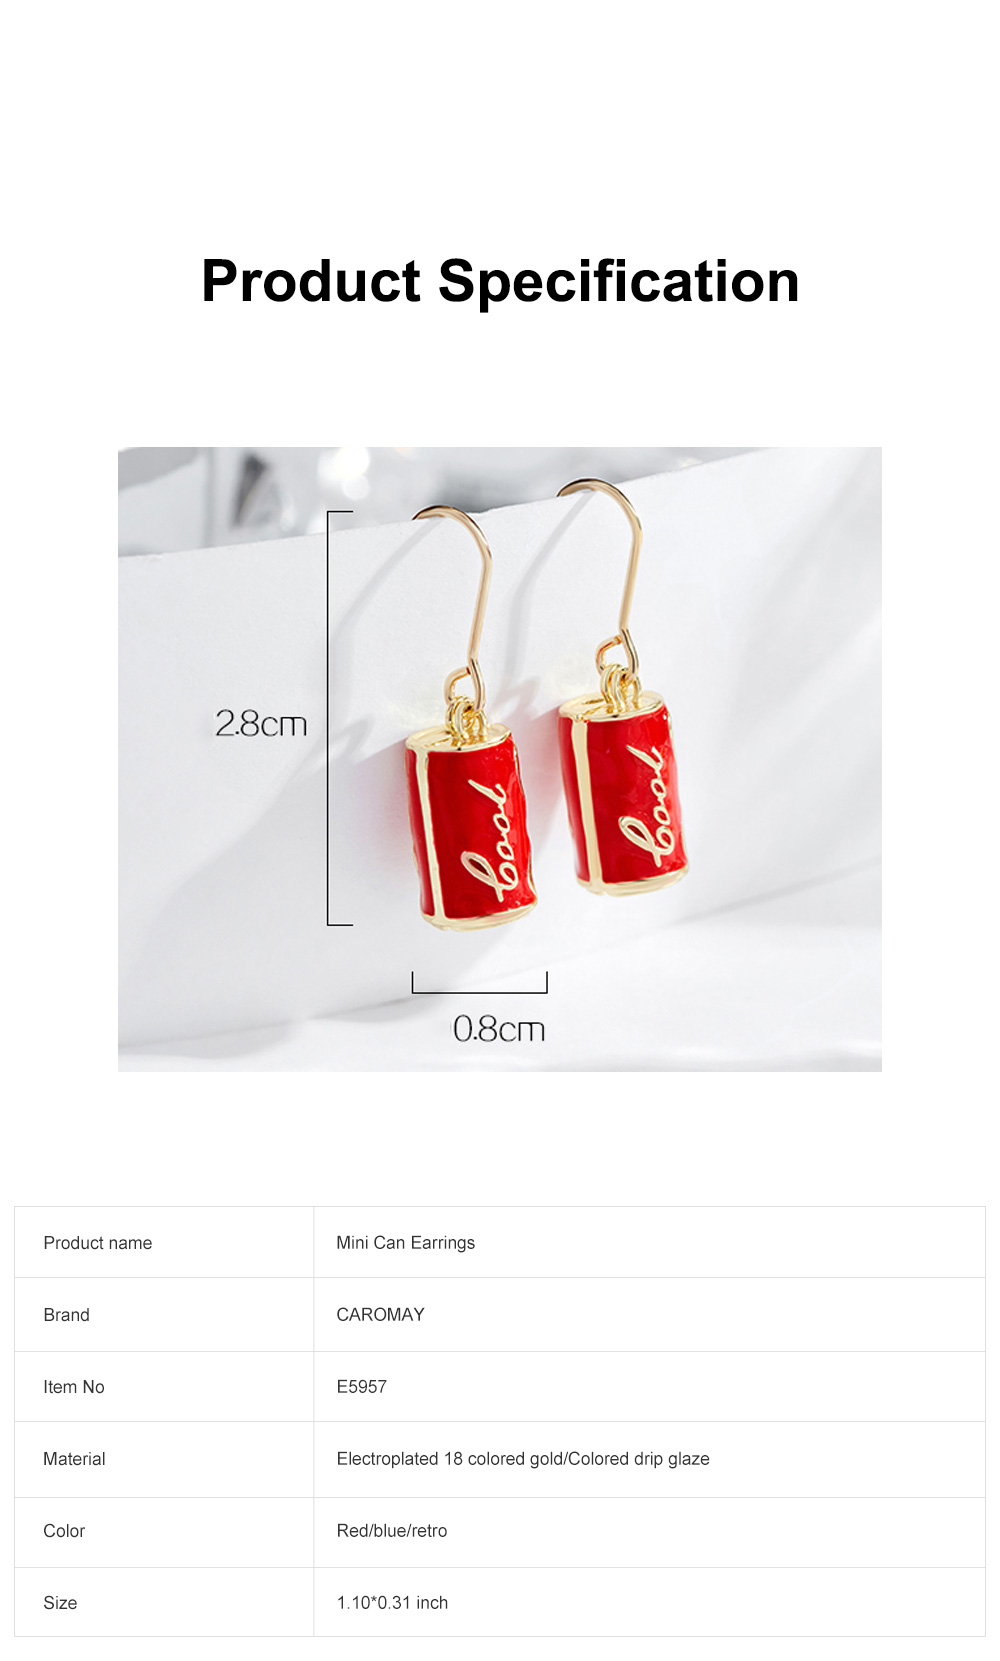 CAROMAY Cola Can Earrings 18K Colored Gold Can Ear Jewelry for Girls Creative Can Accessory for Party Daily Wearing Valentine's Day Present 6